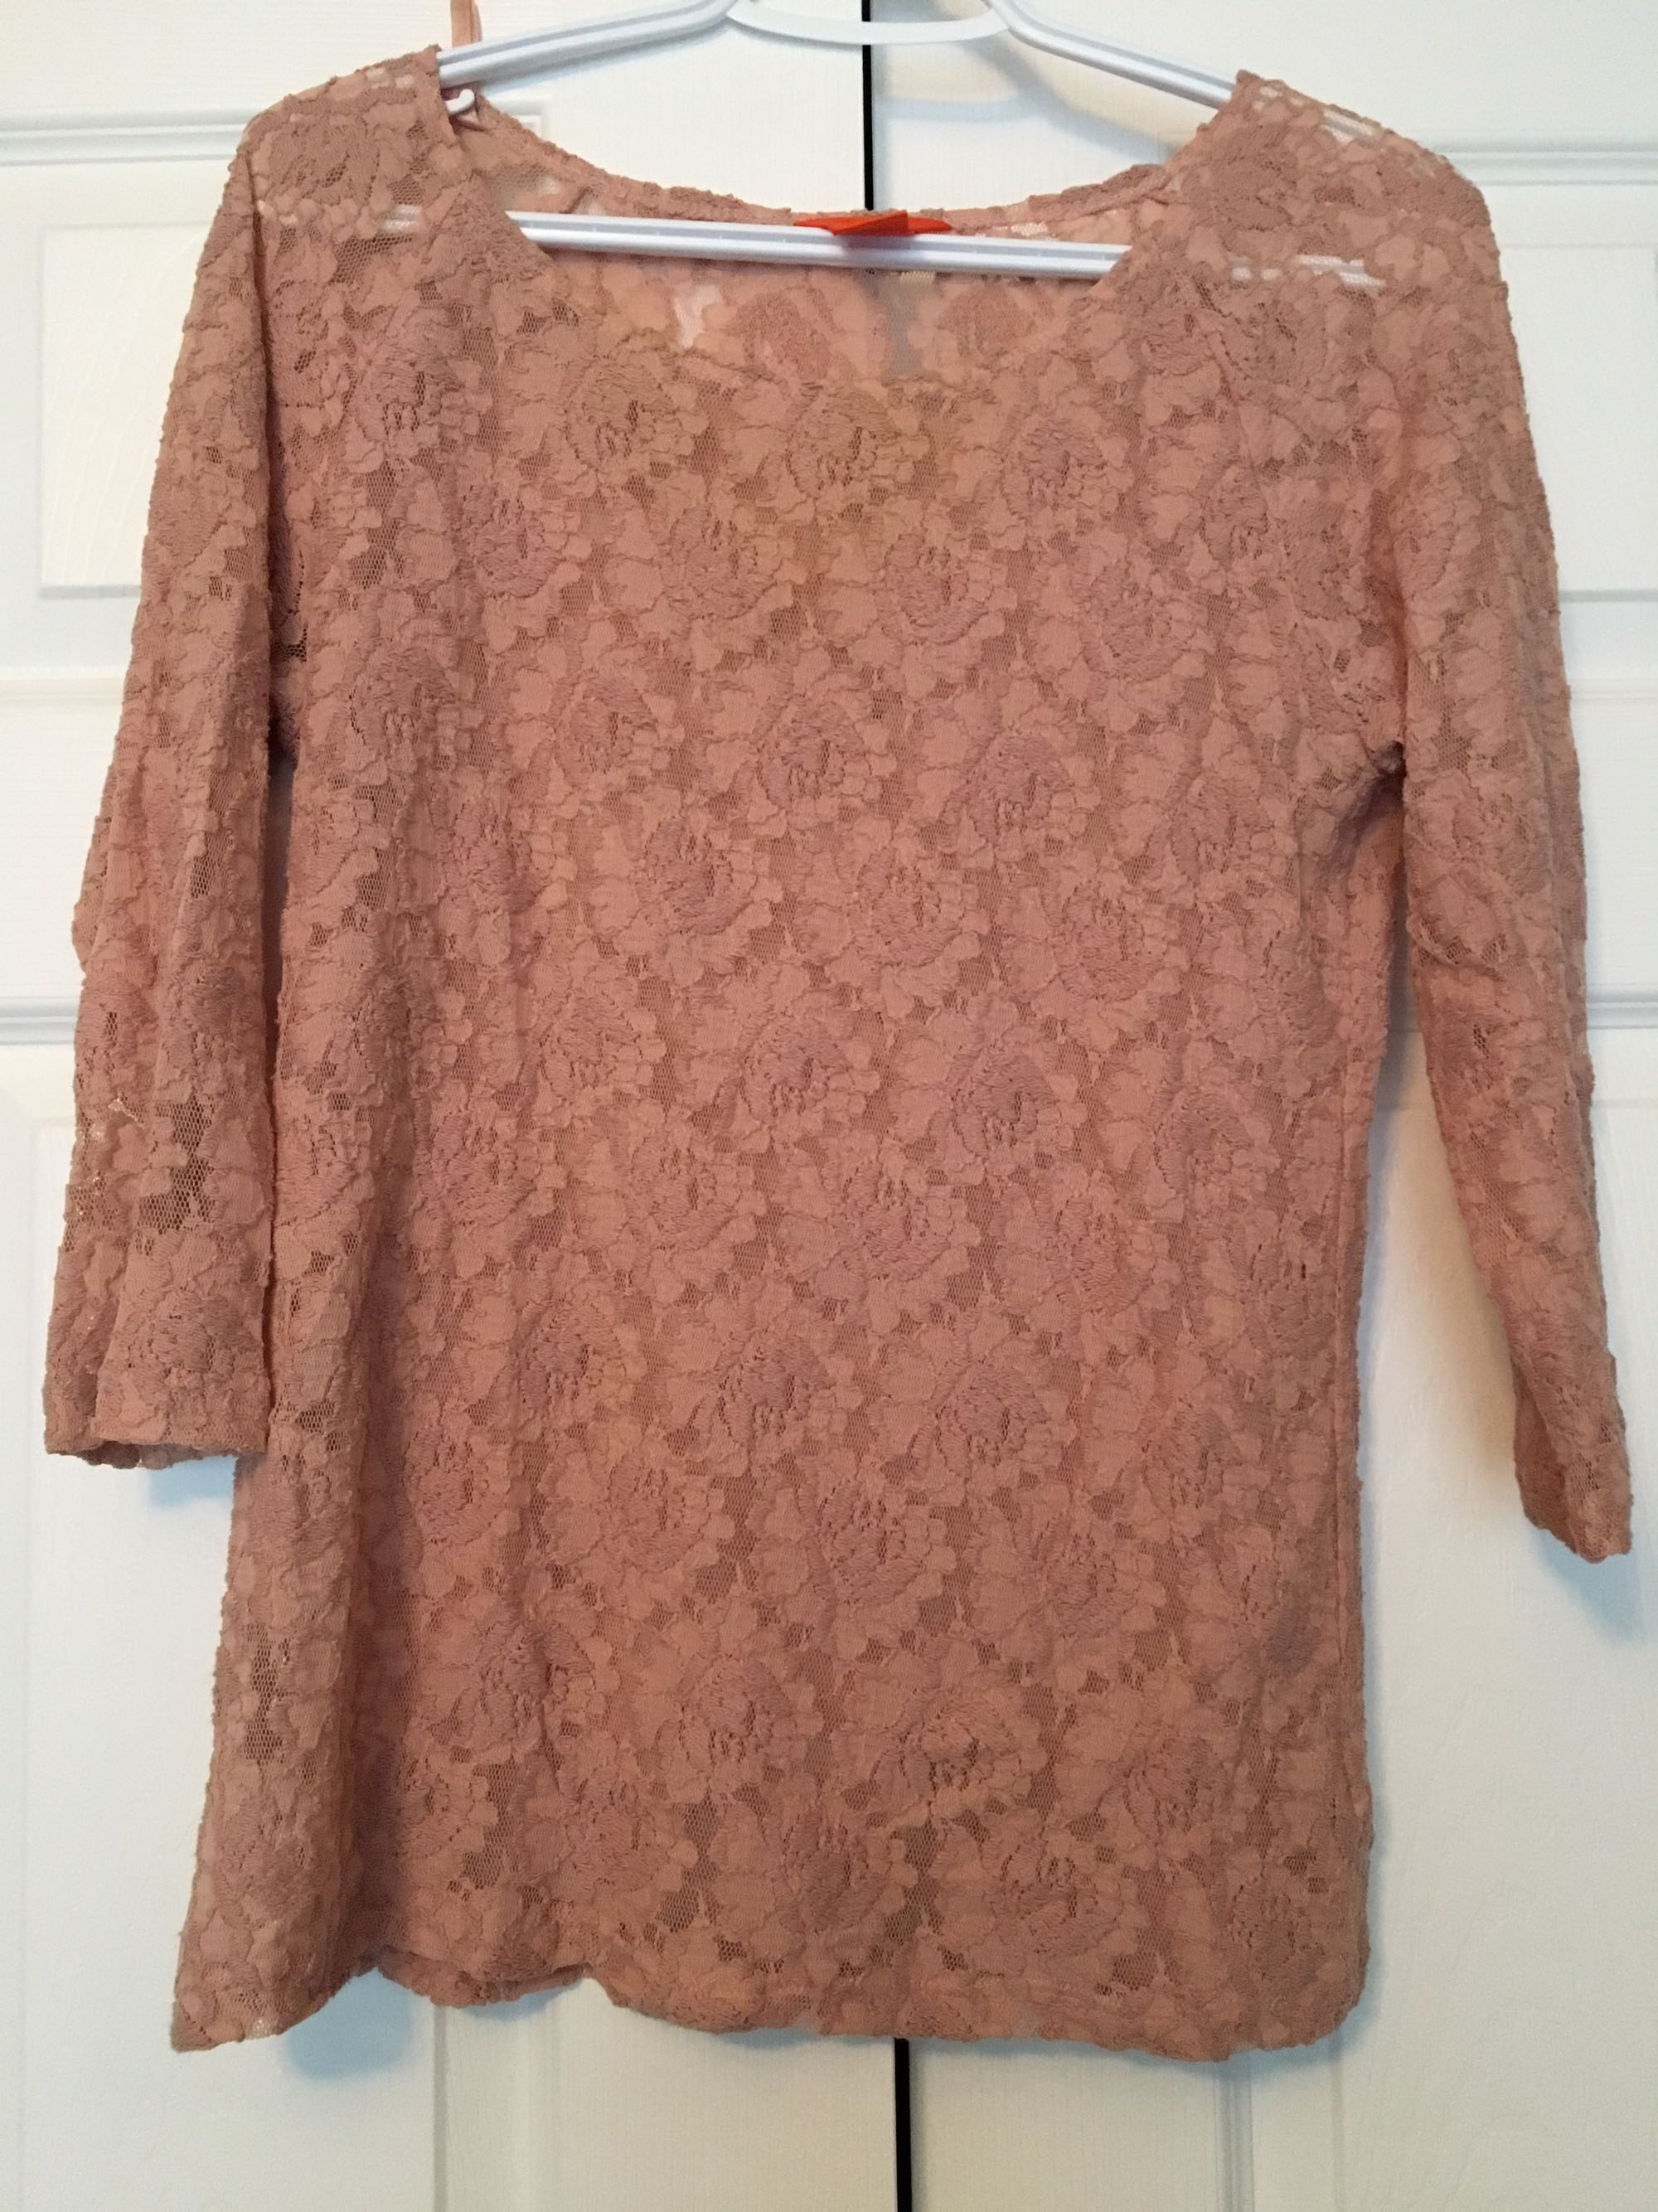 Joe Fresh lace top